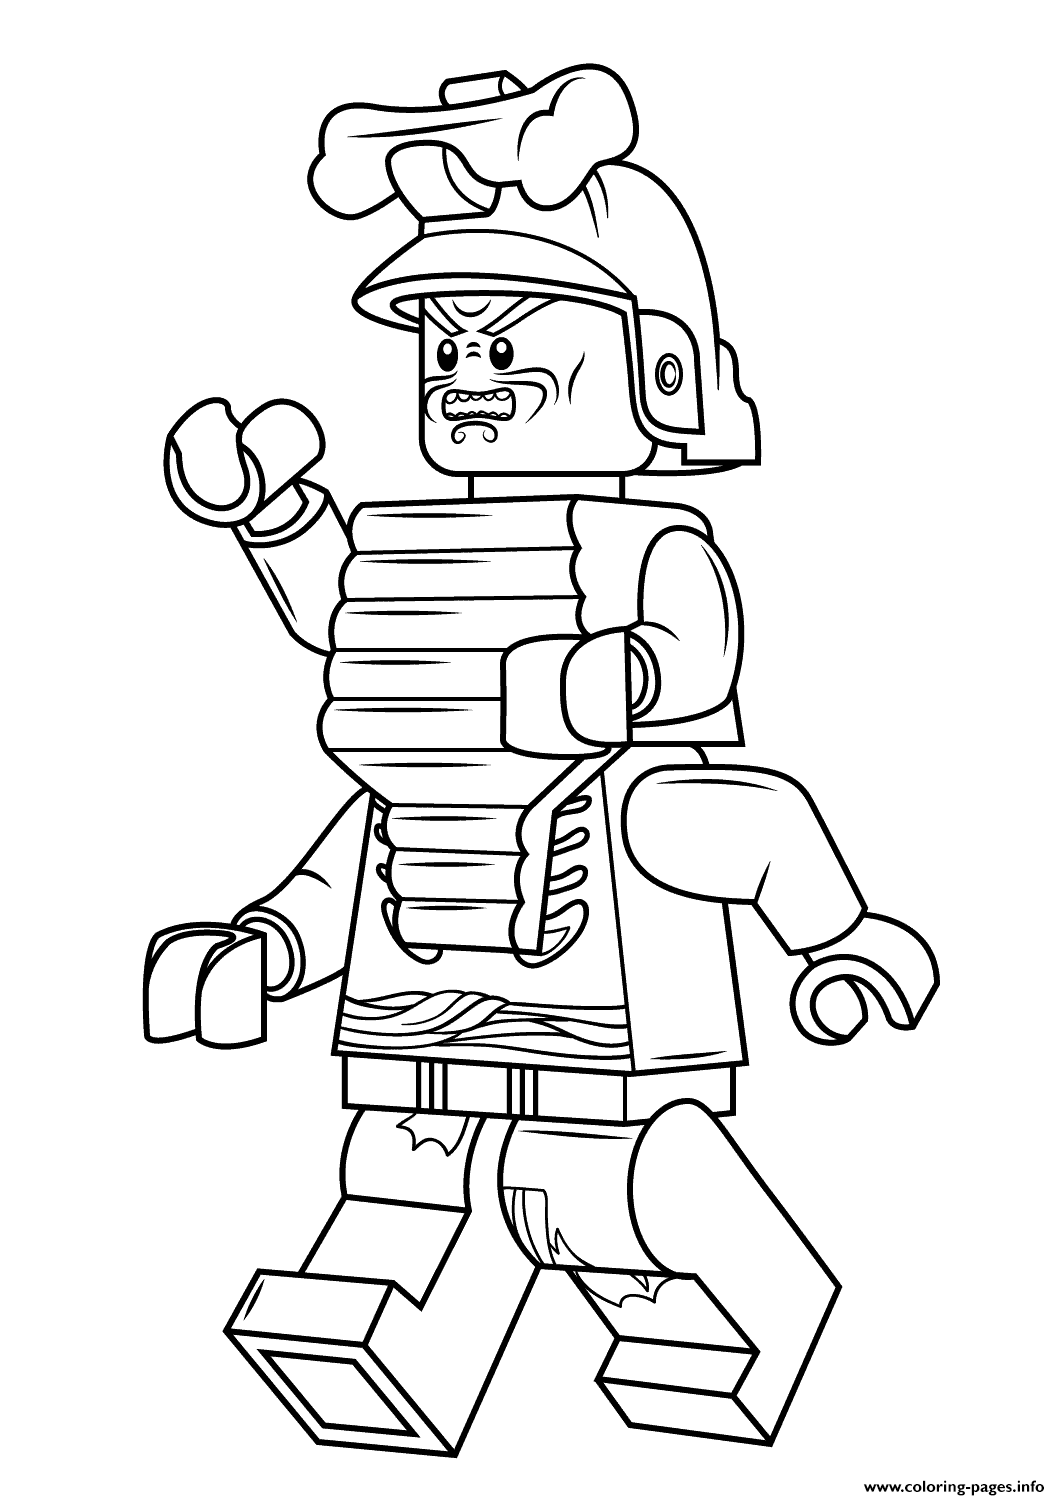 Lego Christmas Coloring Pages Lego Coloring Pages Ninjago Coloring Pages Lego Coloring